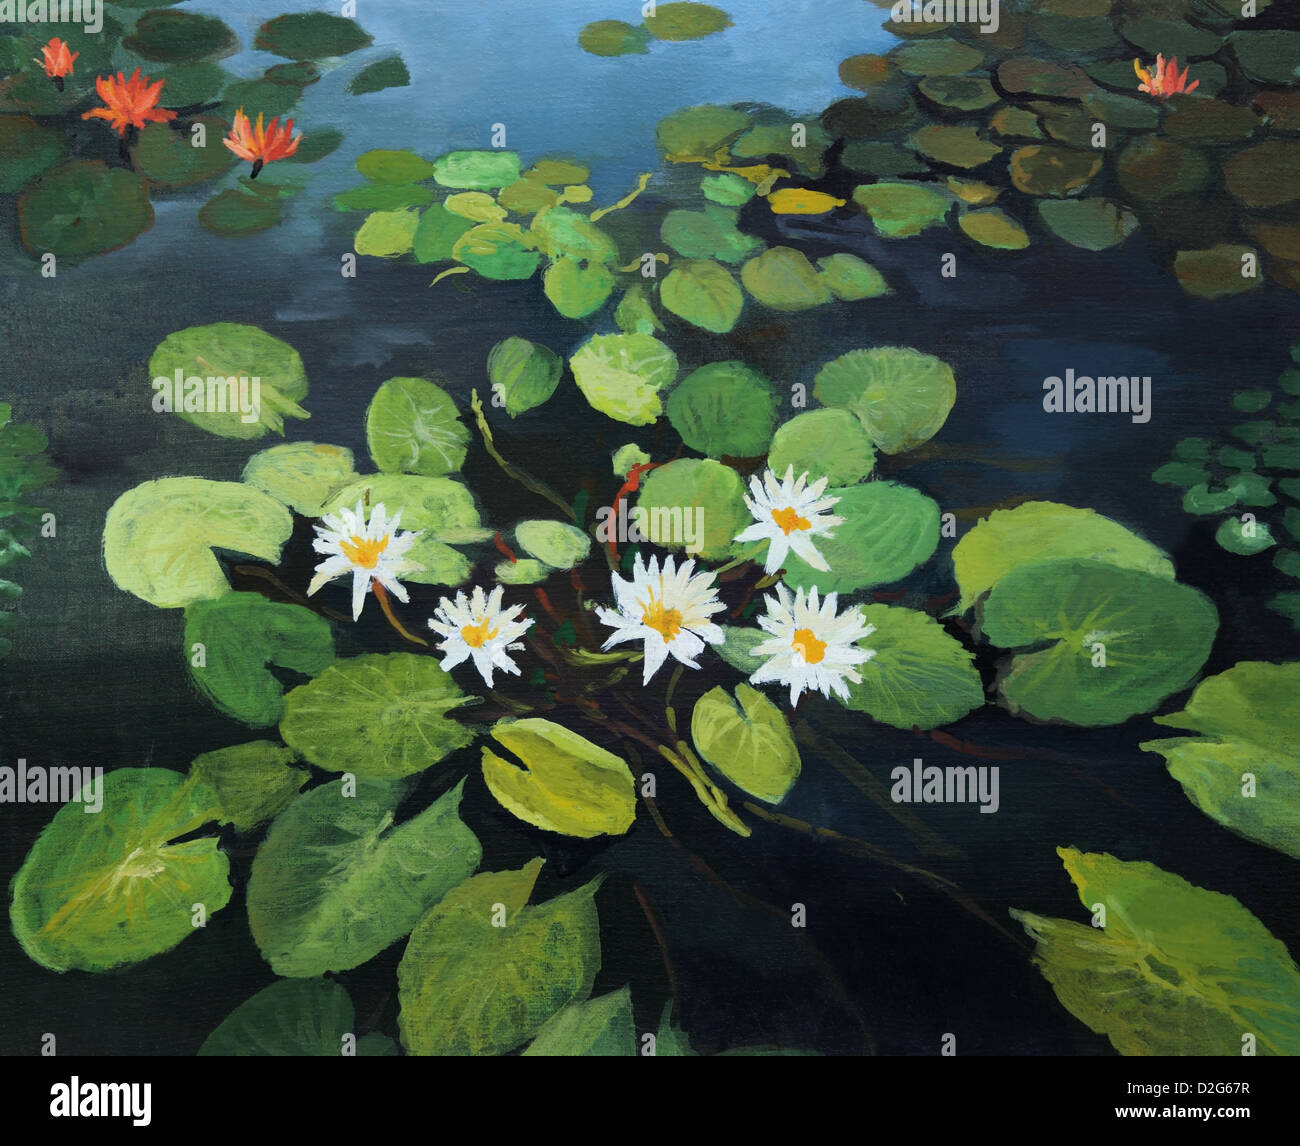 Oil painting beautiful flowers artwork stock photos oil painting an oil painting on canvas of a colorful pond with beautiful water lilies lotus flowers izmirmasajfo